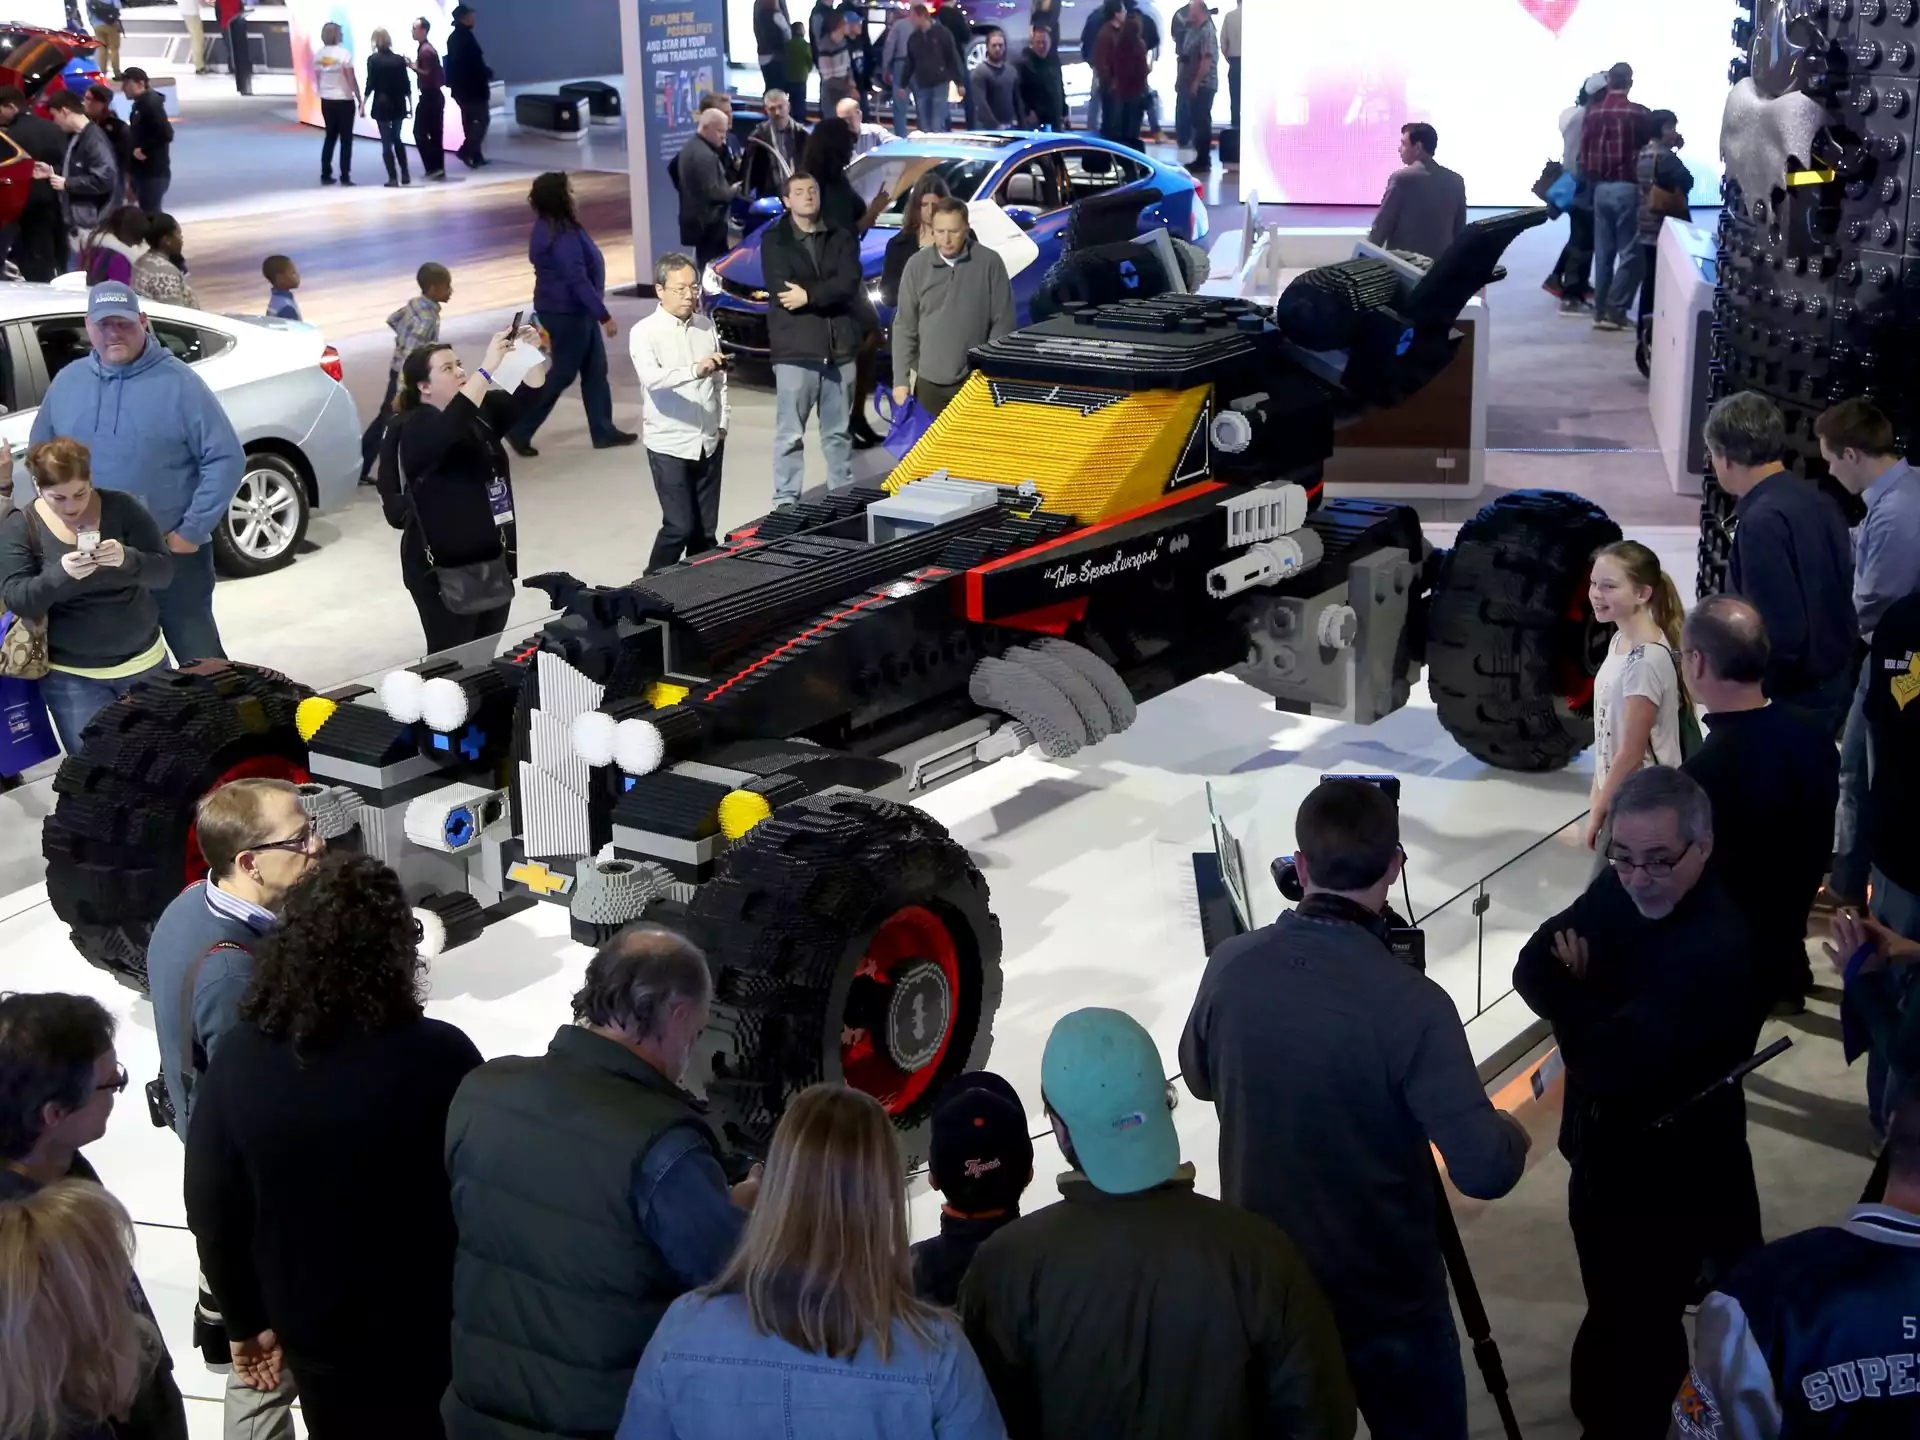 Life Sized Lego Batmobile Unveiled At Detroit Auto Show The Lego